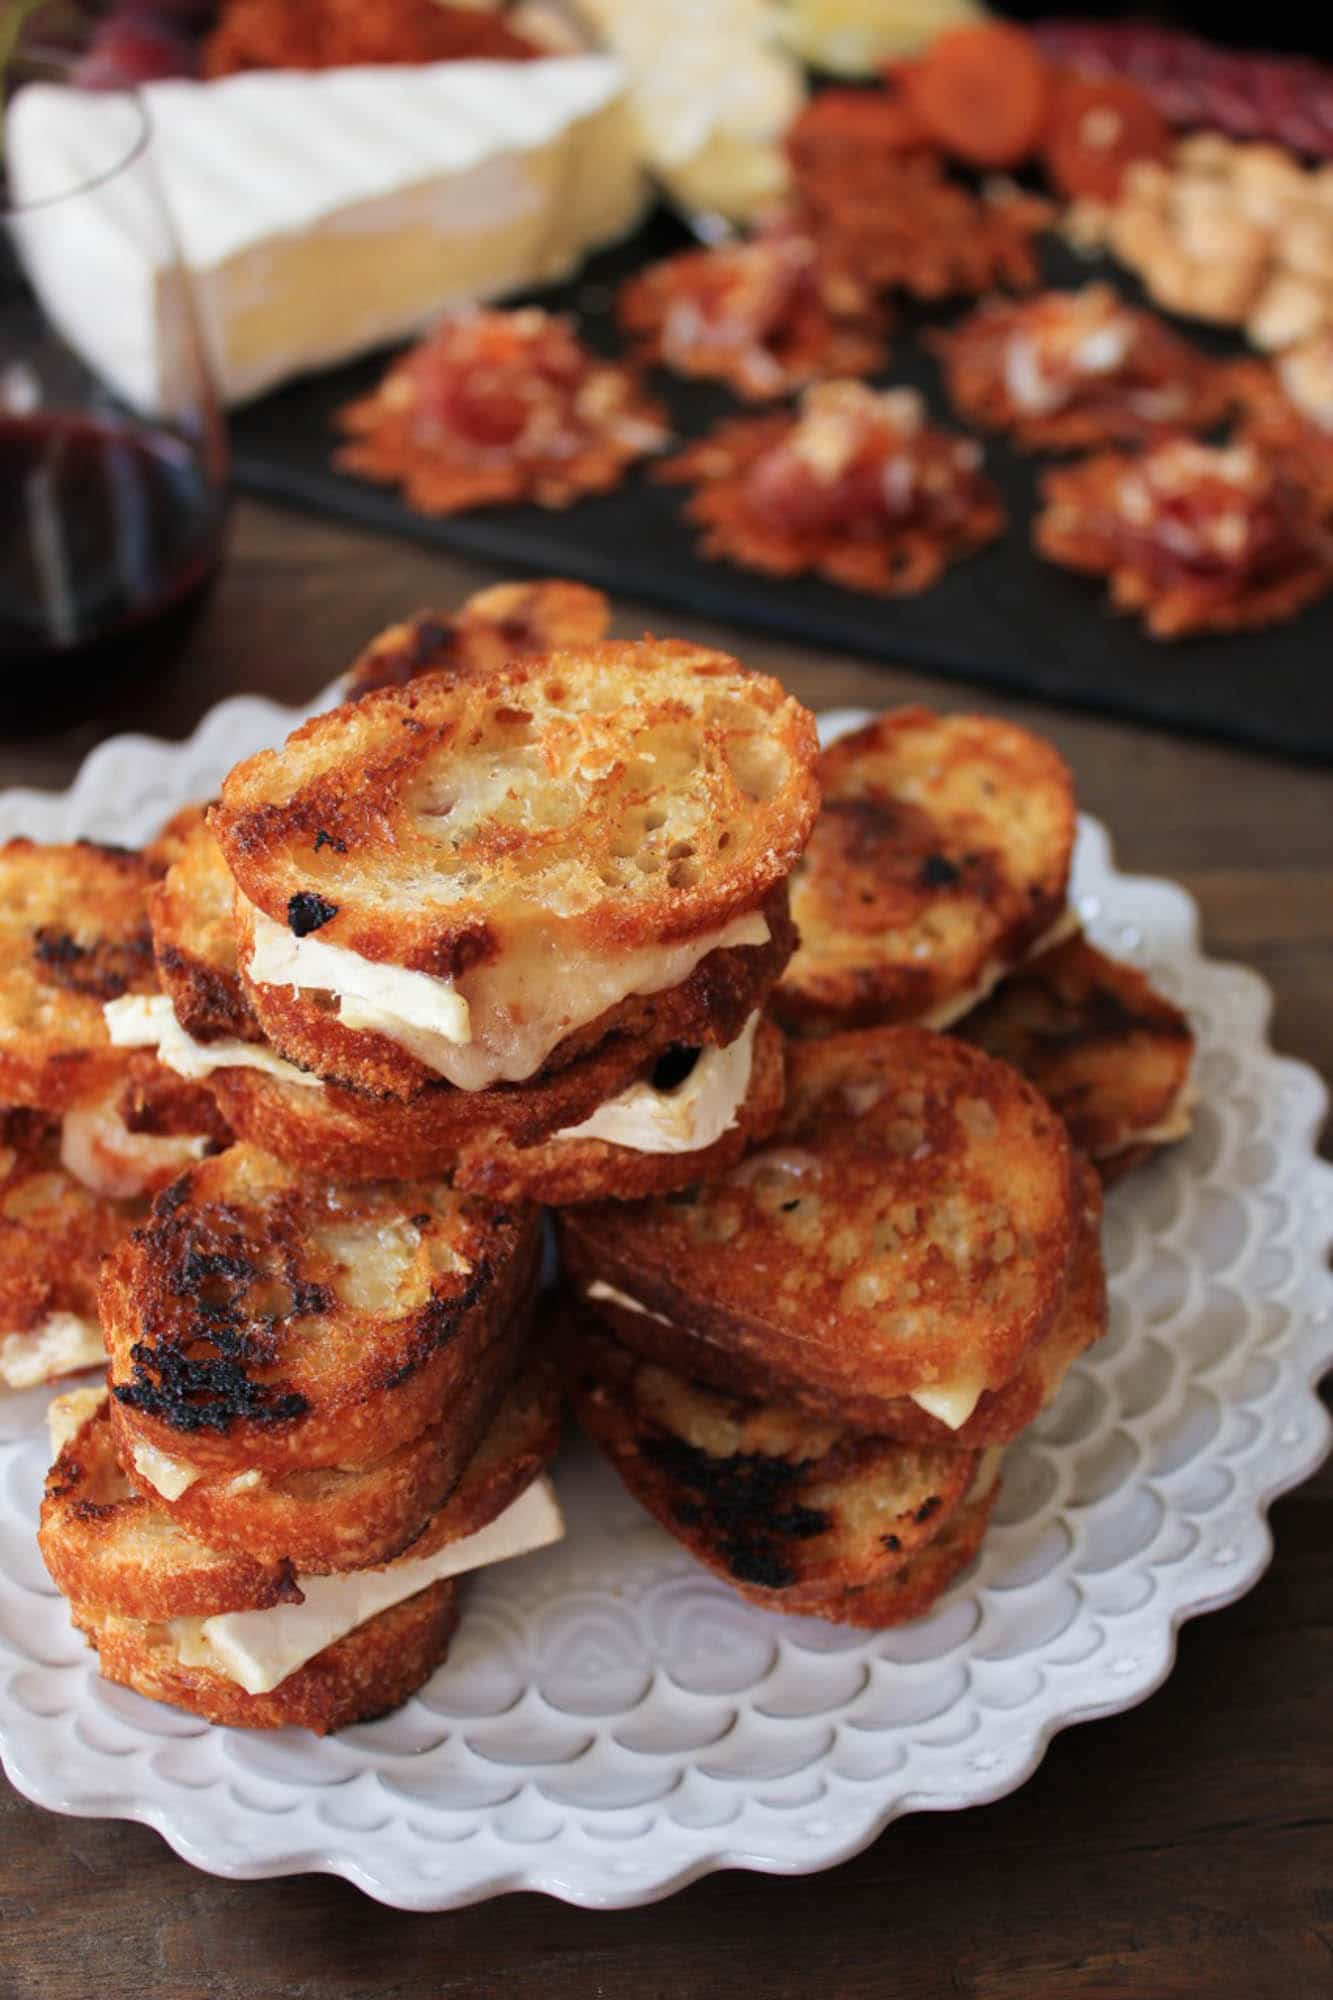 Brie-and-Candied-Bacon-Grilled-Cheese-Bites-5 (1 of 1)